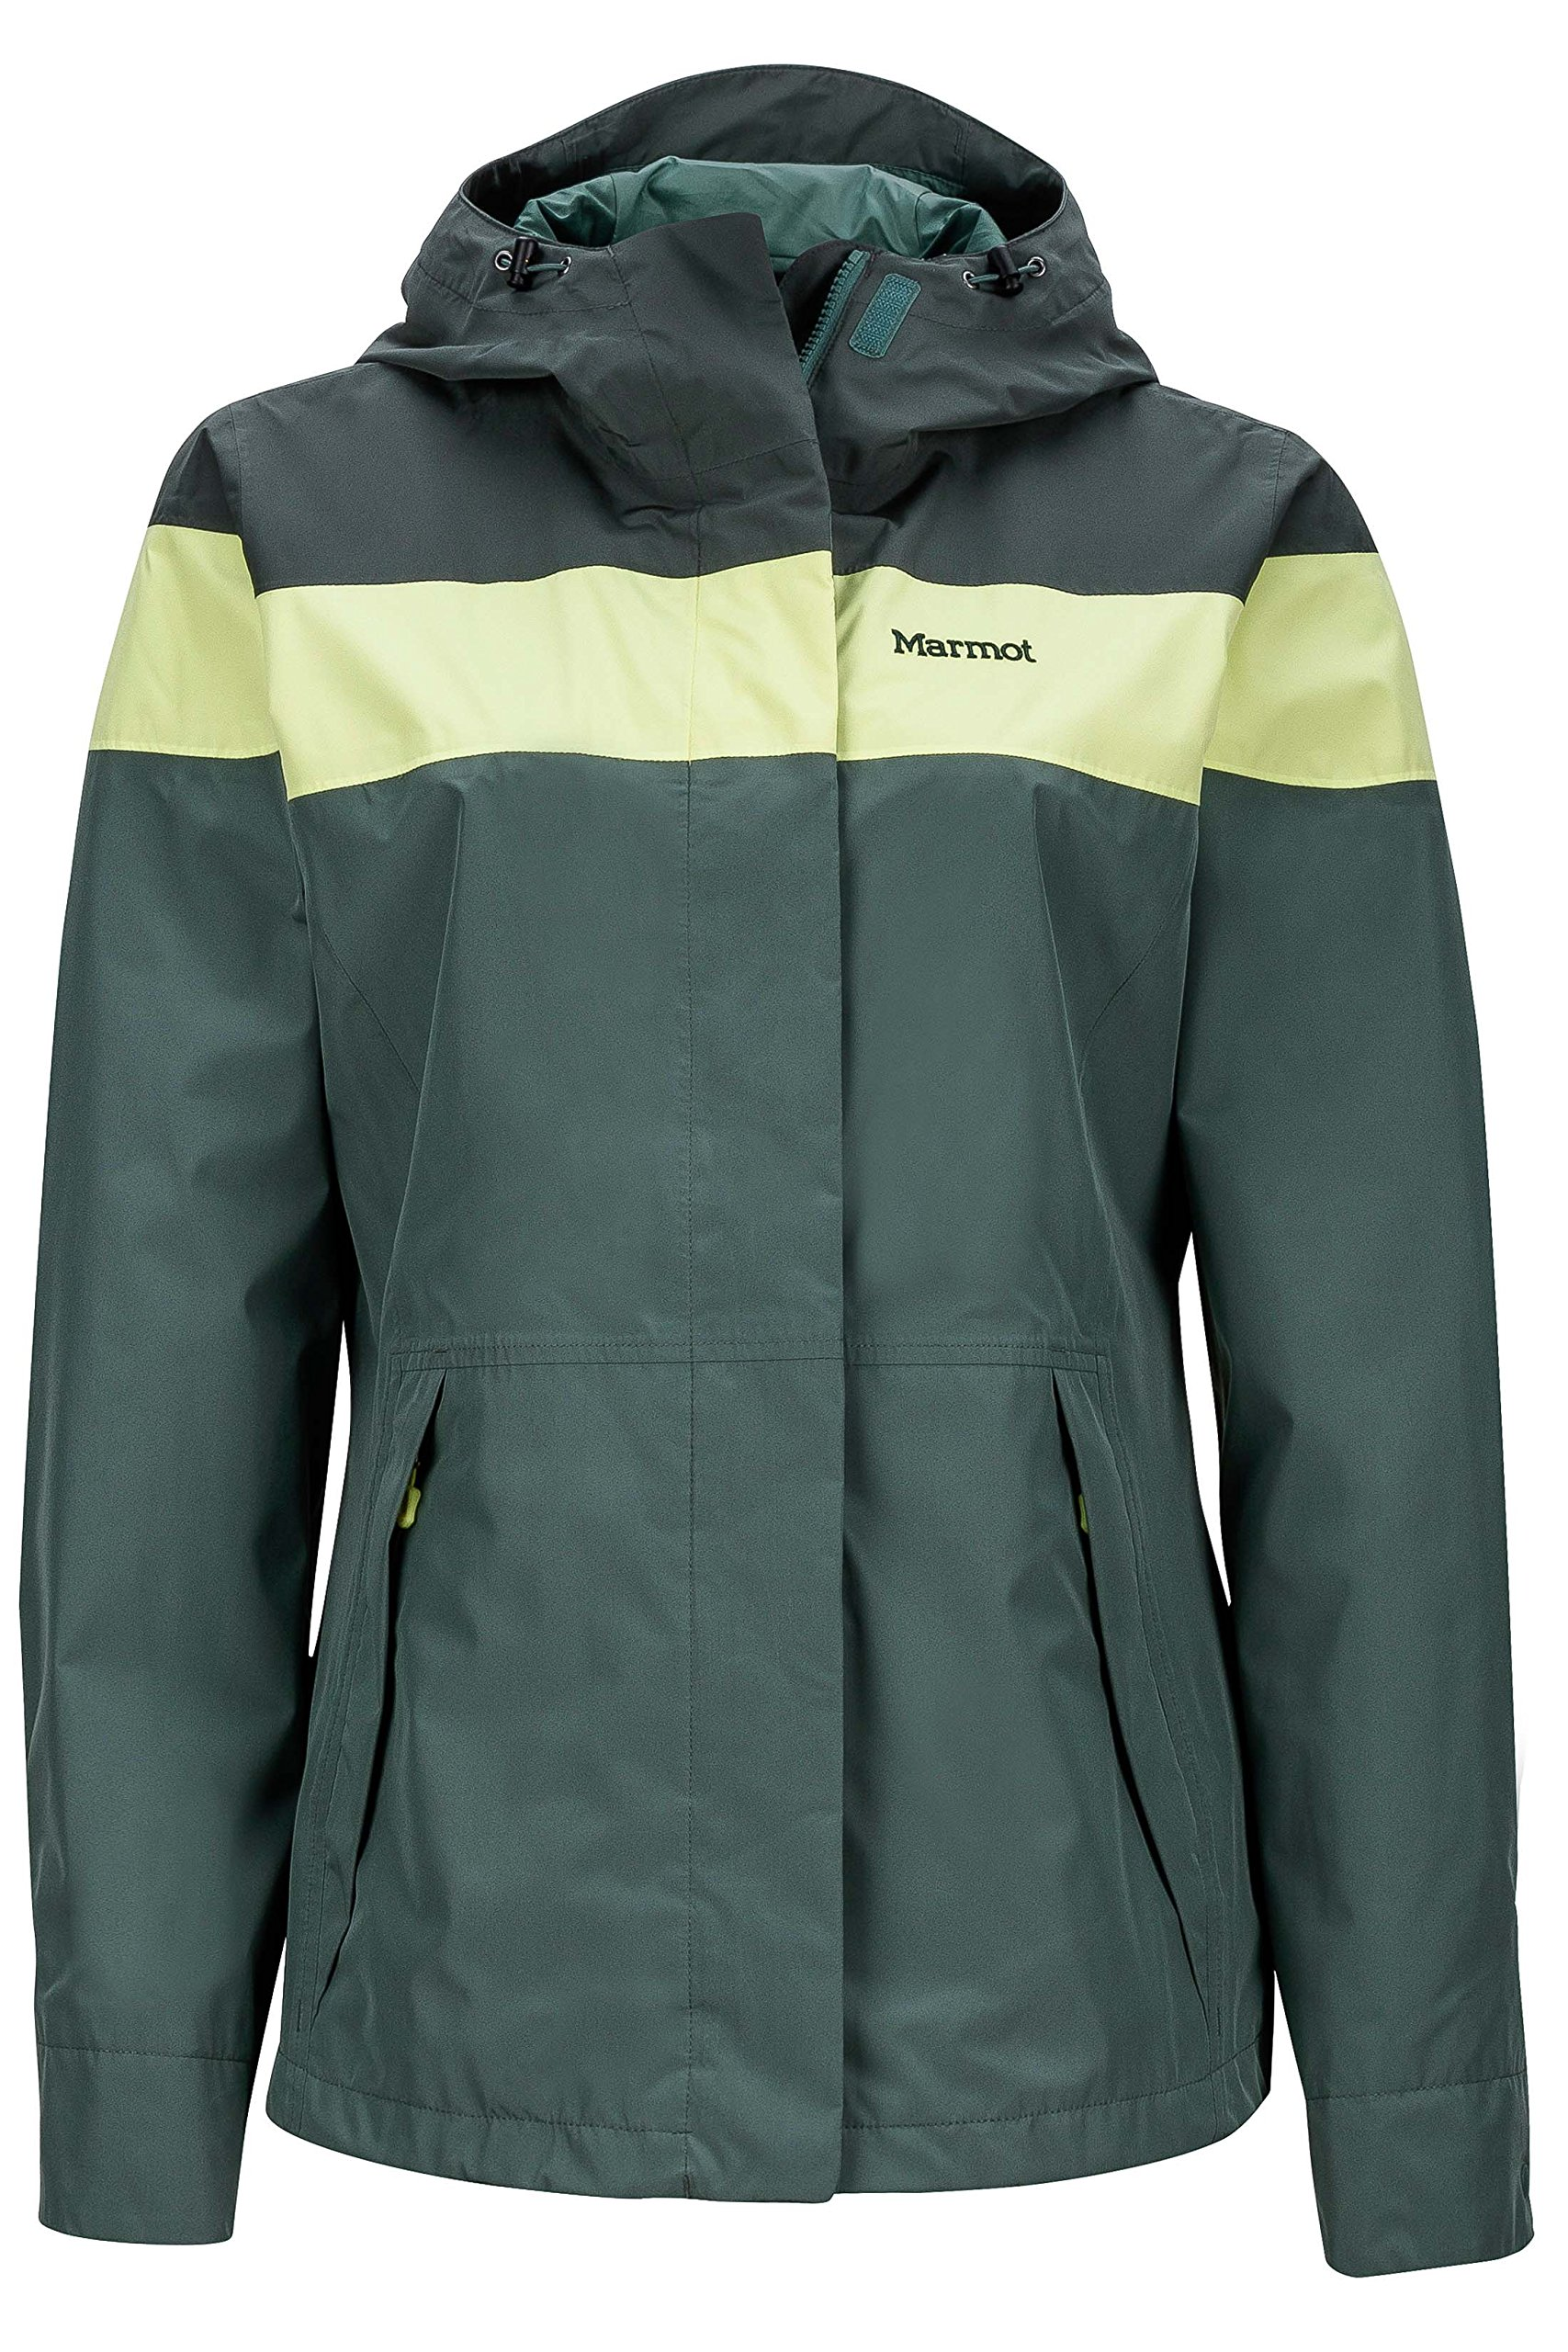 Marmot Roam Women's Lightweight Waterproof Hooded Rain Jacket, Urban Army/Dark Zinc, Medium by Marmot (Image #1)